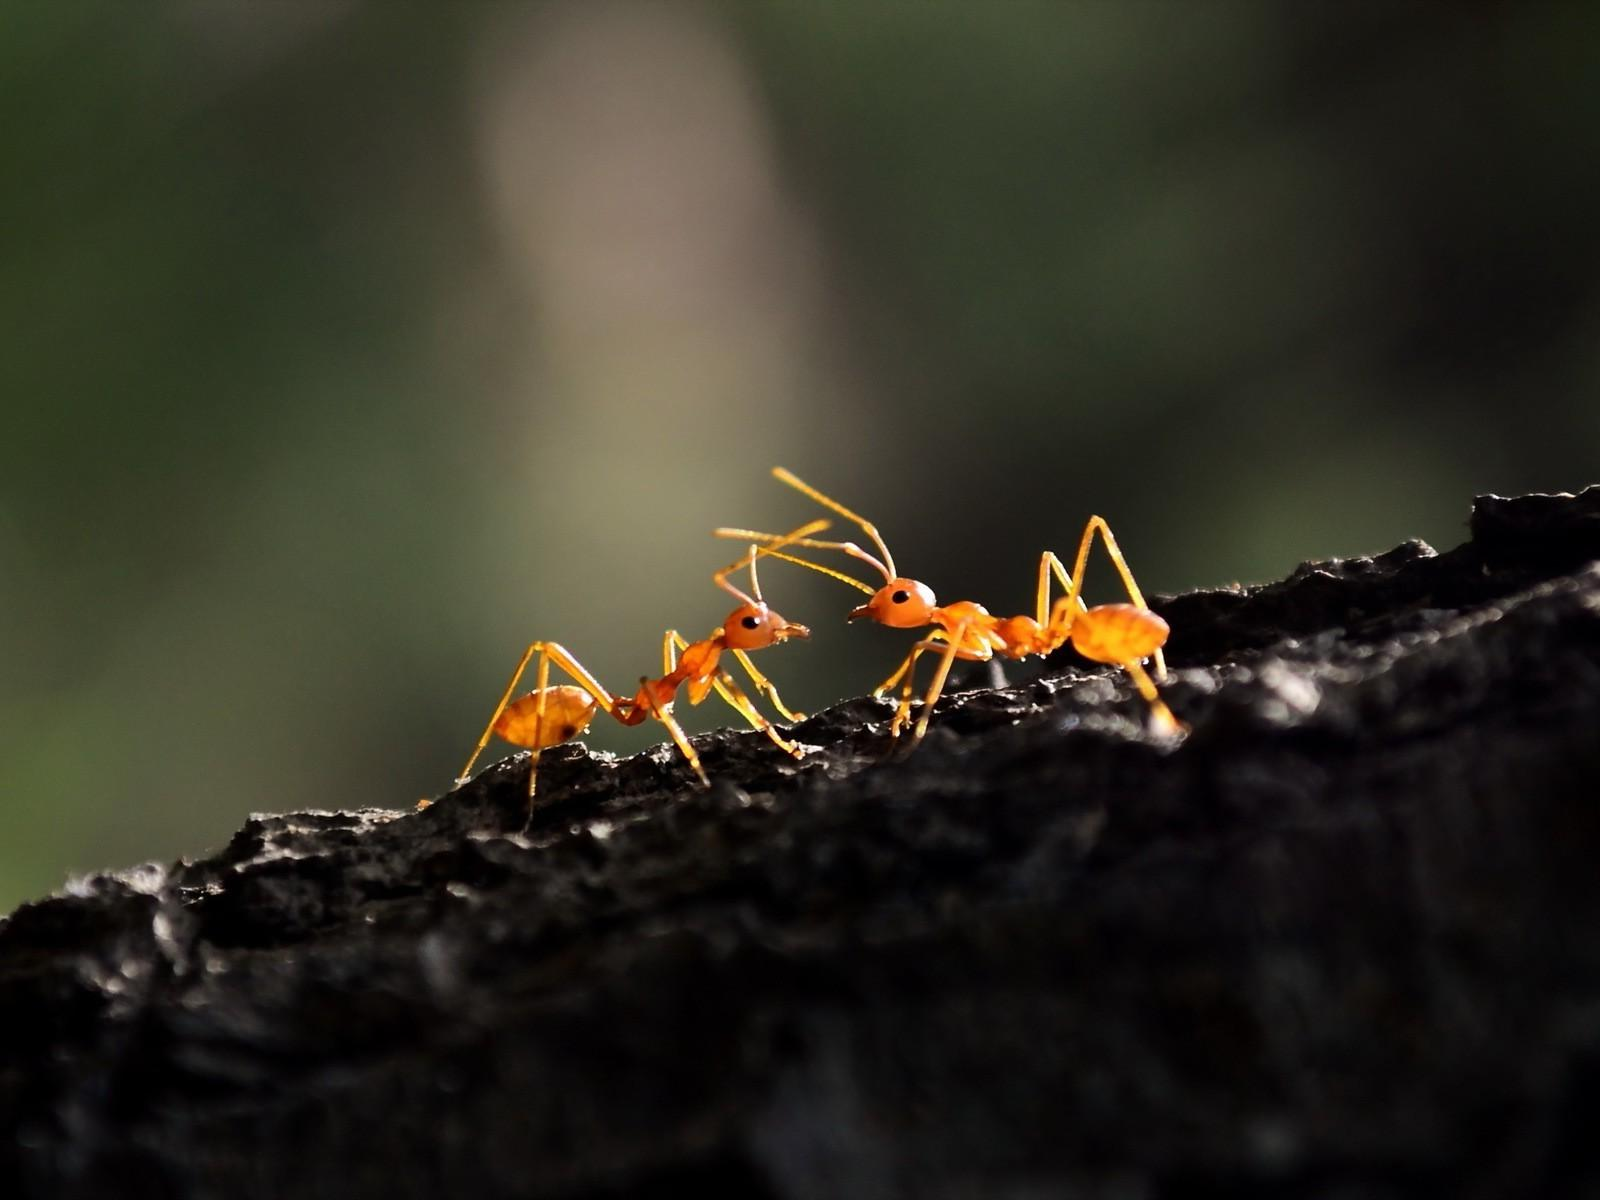 1600x1200 - Ant Wallpapers 33